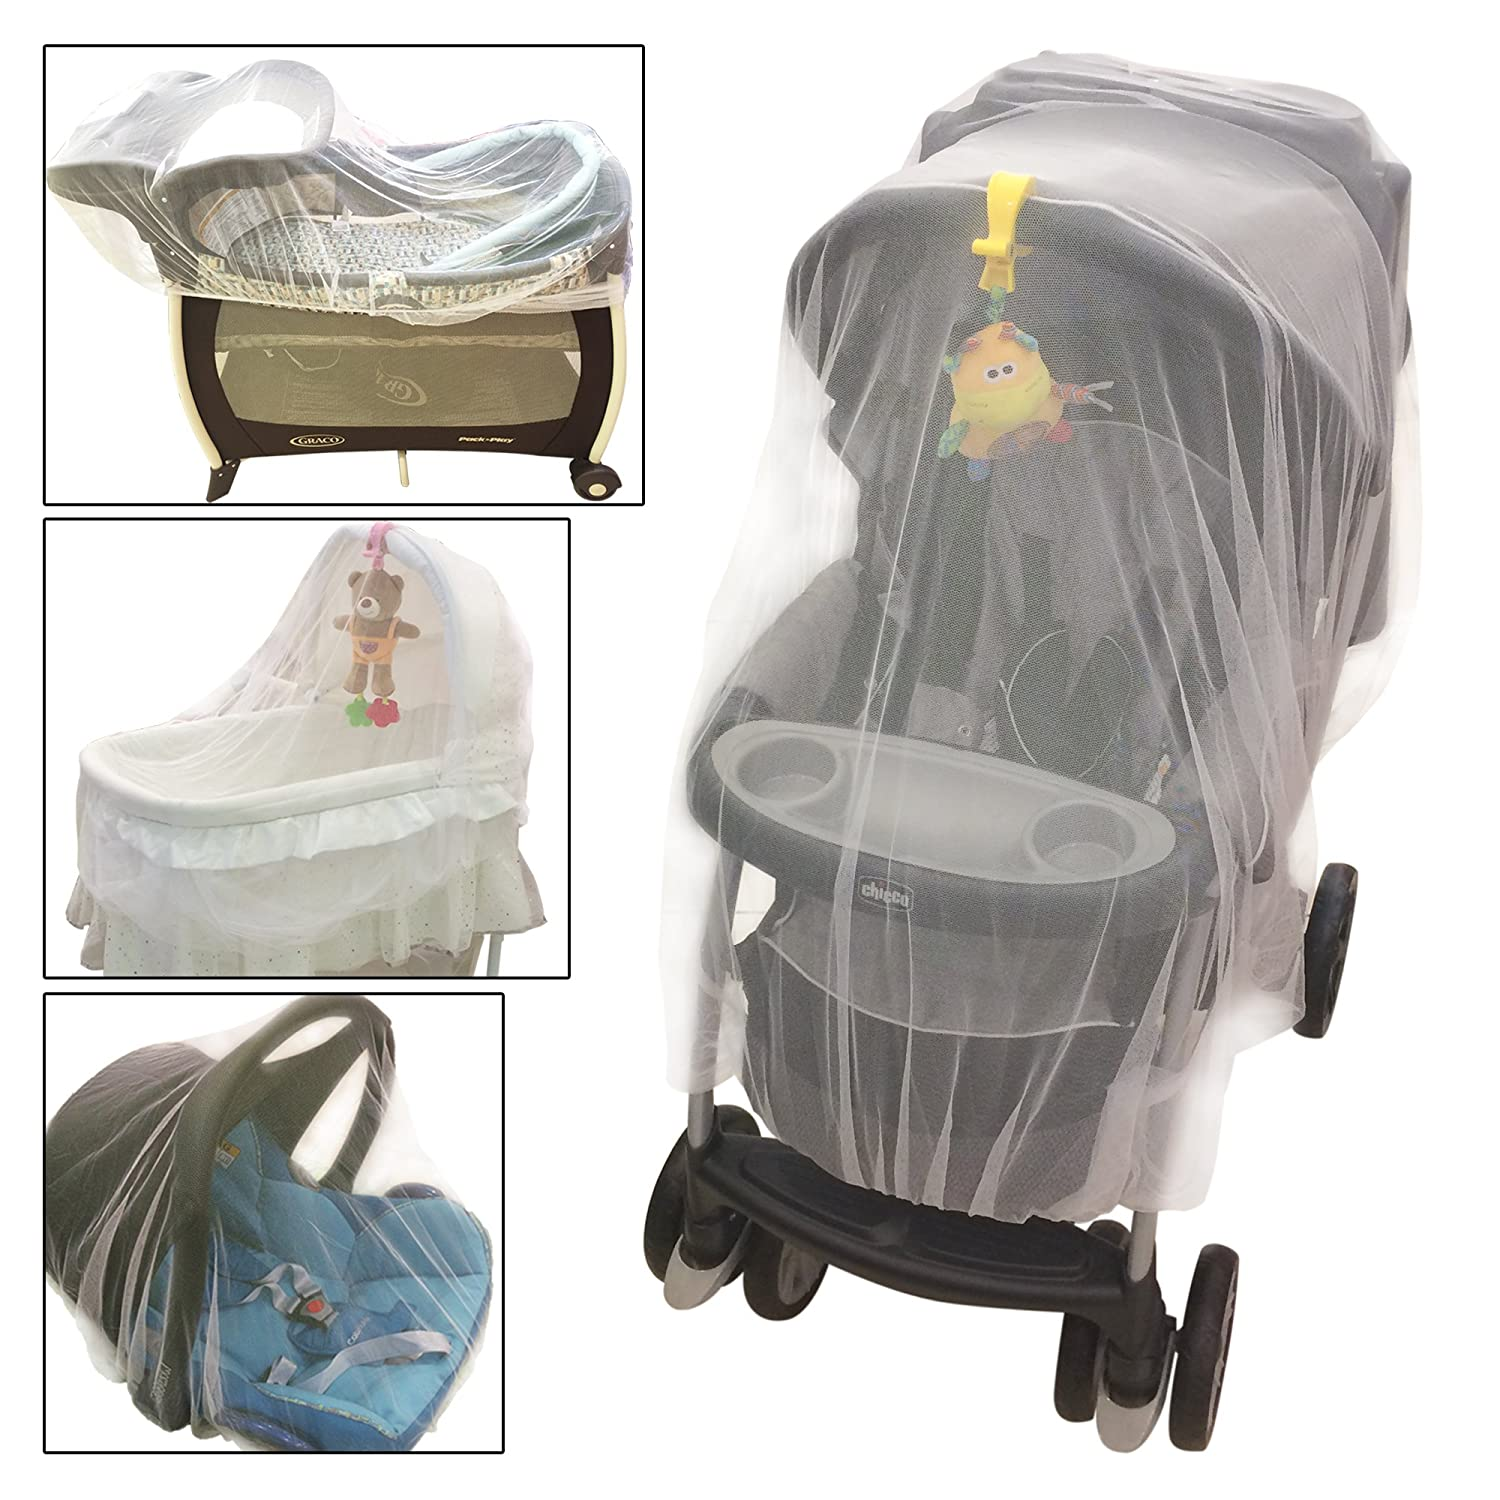 Mosquito Net for Baby Stroller...